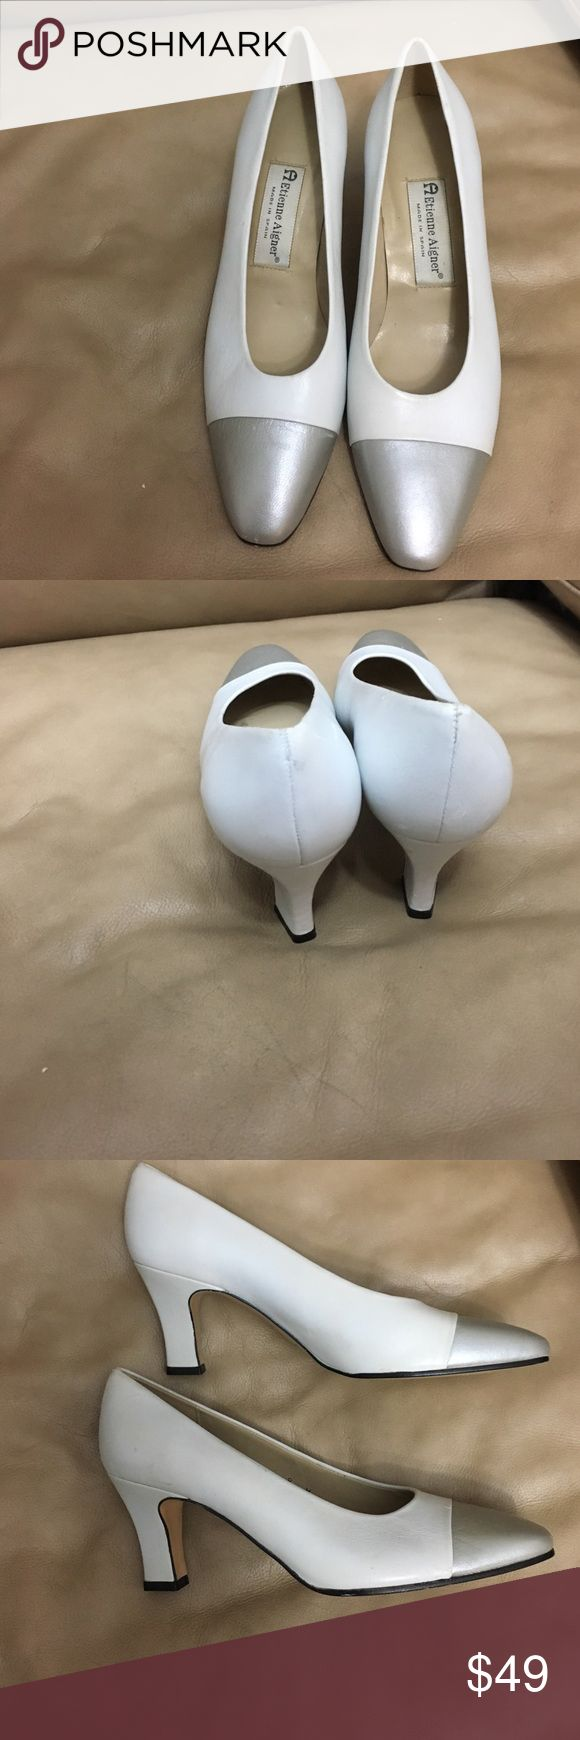 """Etienne Aigner Heels  Sz 8 M Two Tone Marietta Two tone- white & silver Shoes will be shipped without the original box Shoes are new but have some marks from storage. Please look at pictures.  Us Size 8M.. Heels are aproxímate 2 1/4"""" high Etienne Aigner Shoes Heels"""